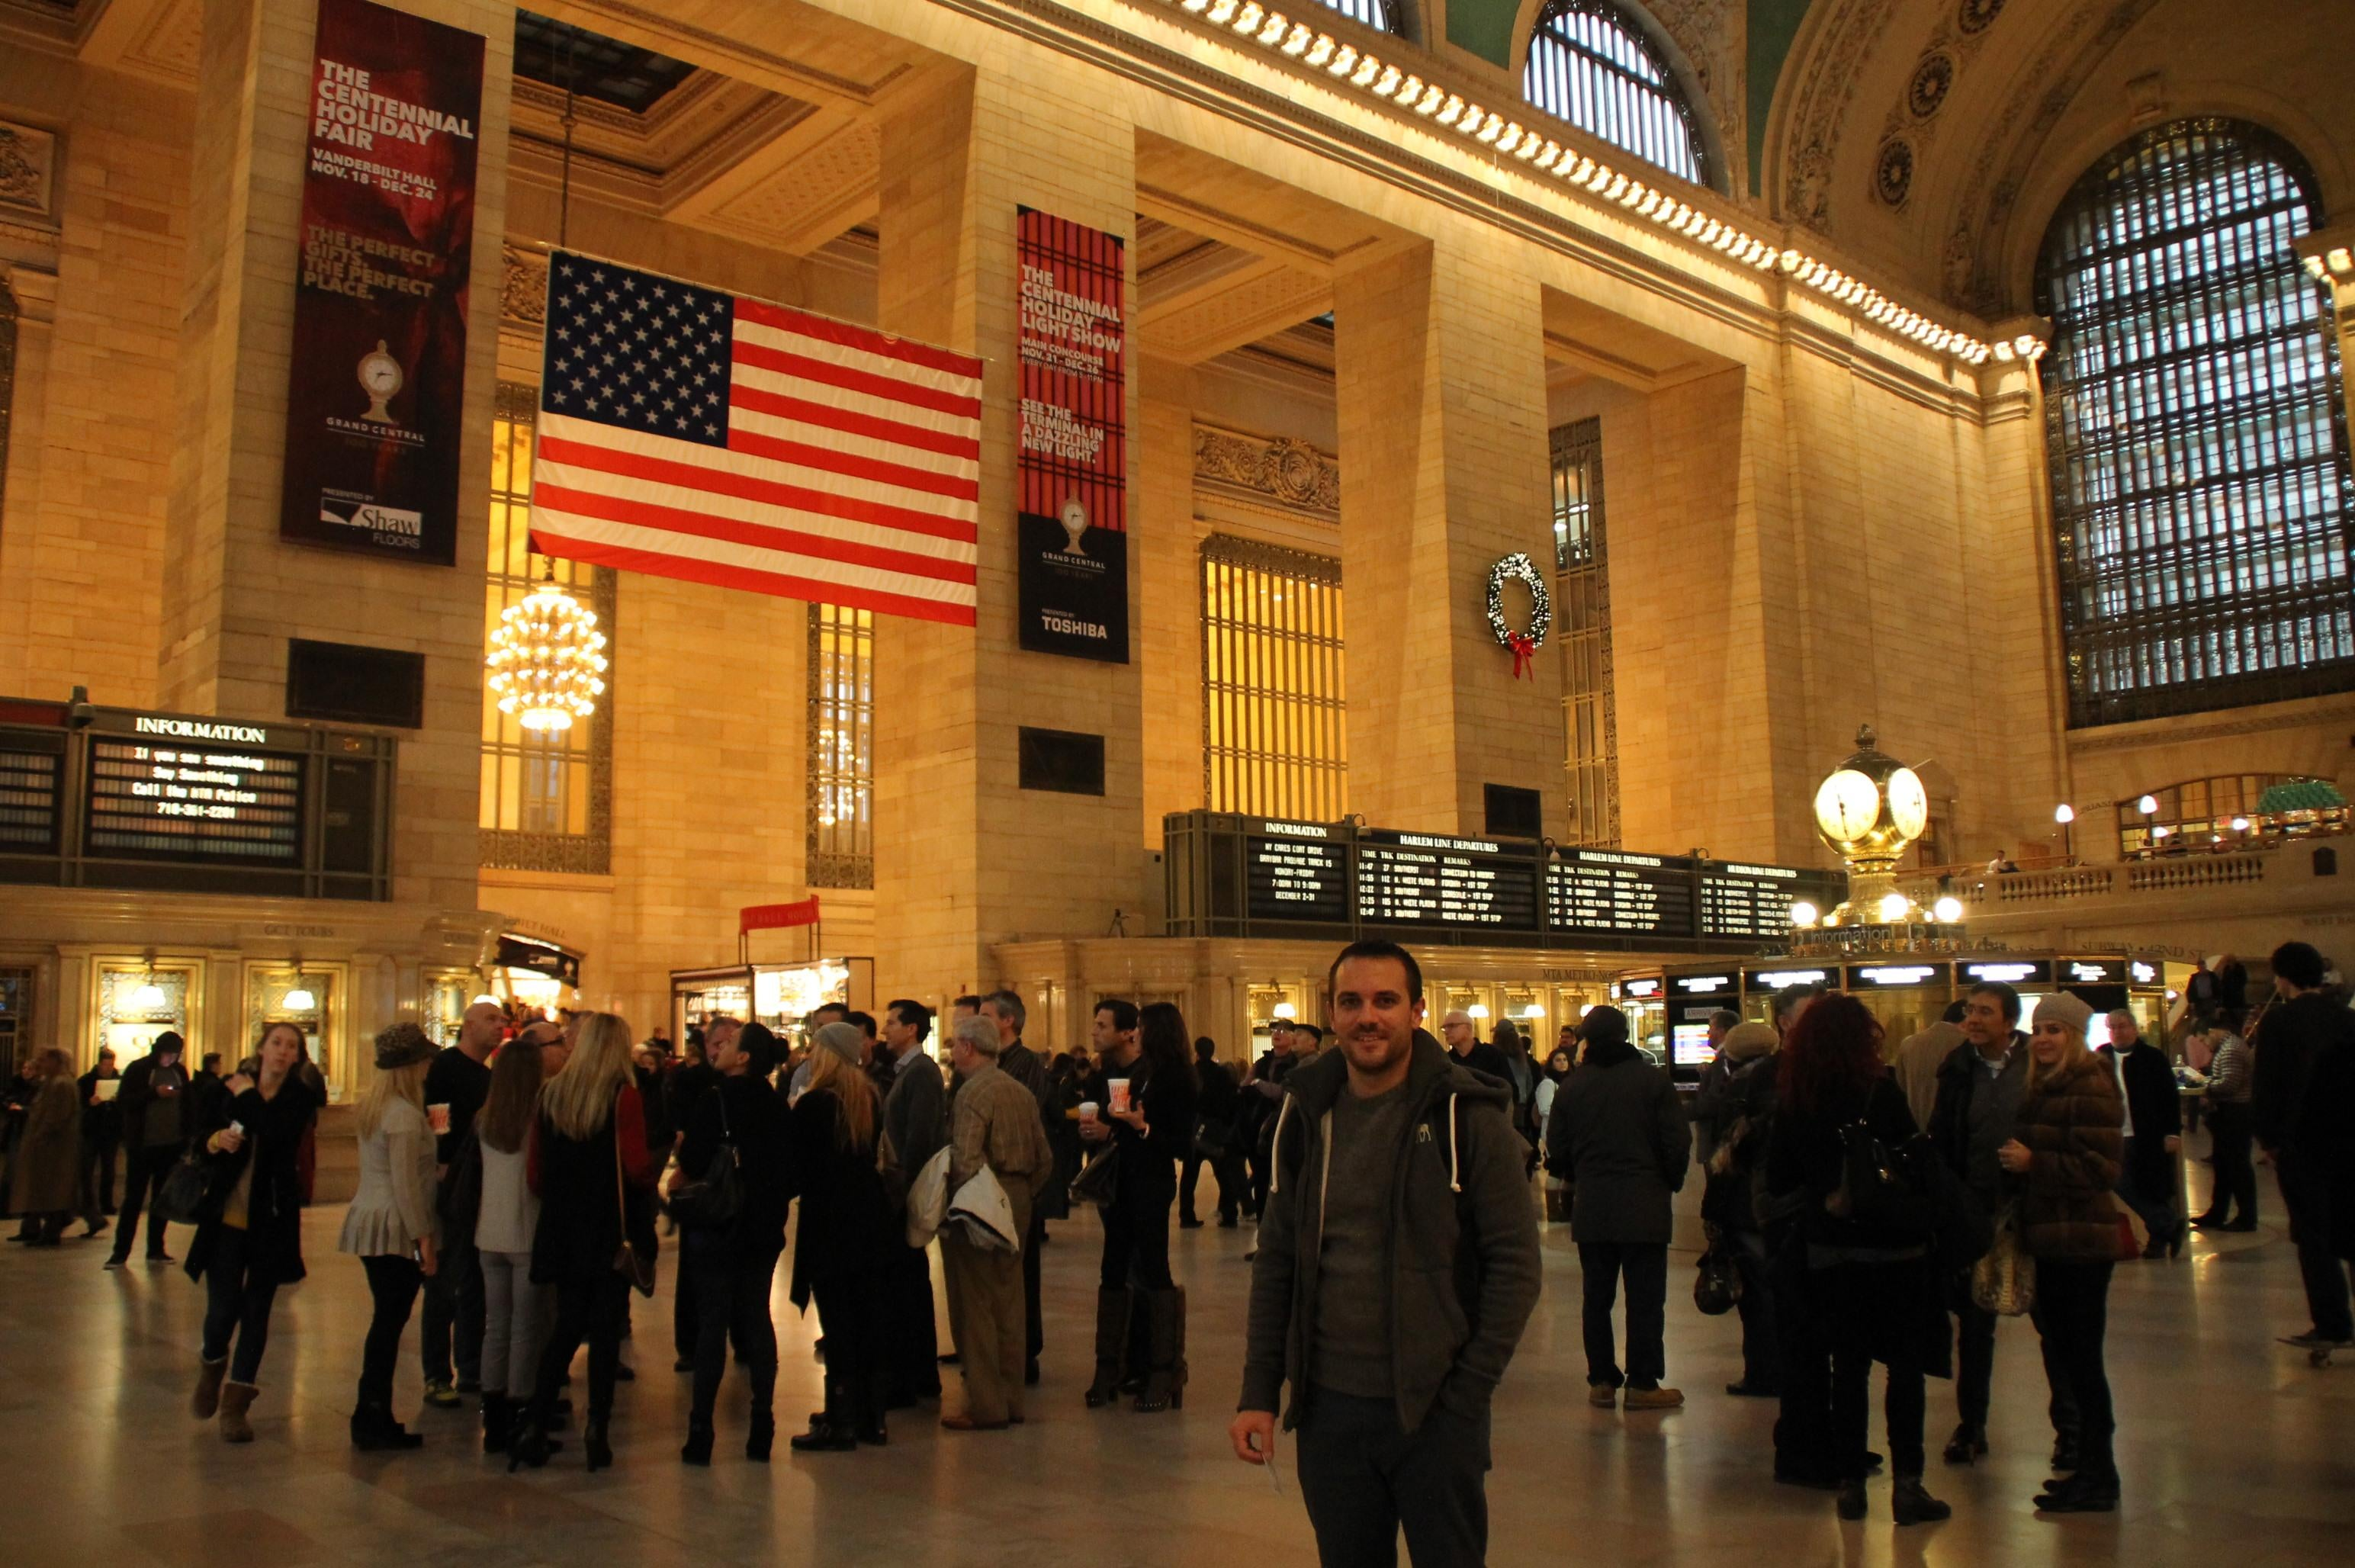 Ciudad en Grand Central Station